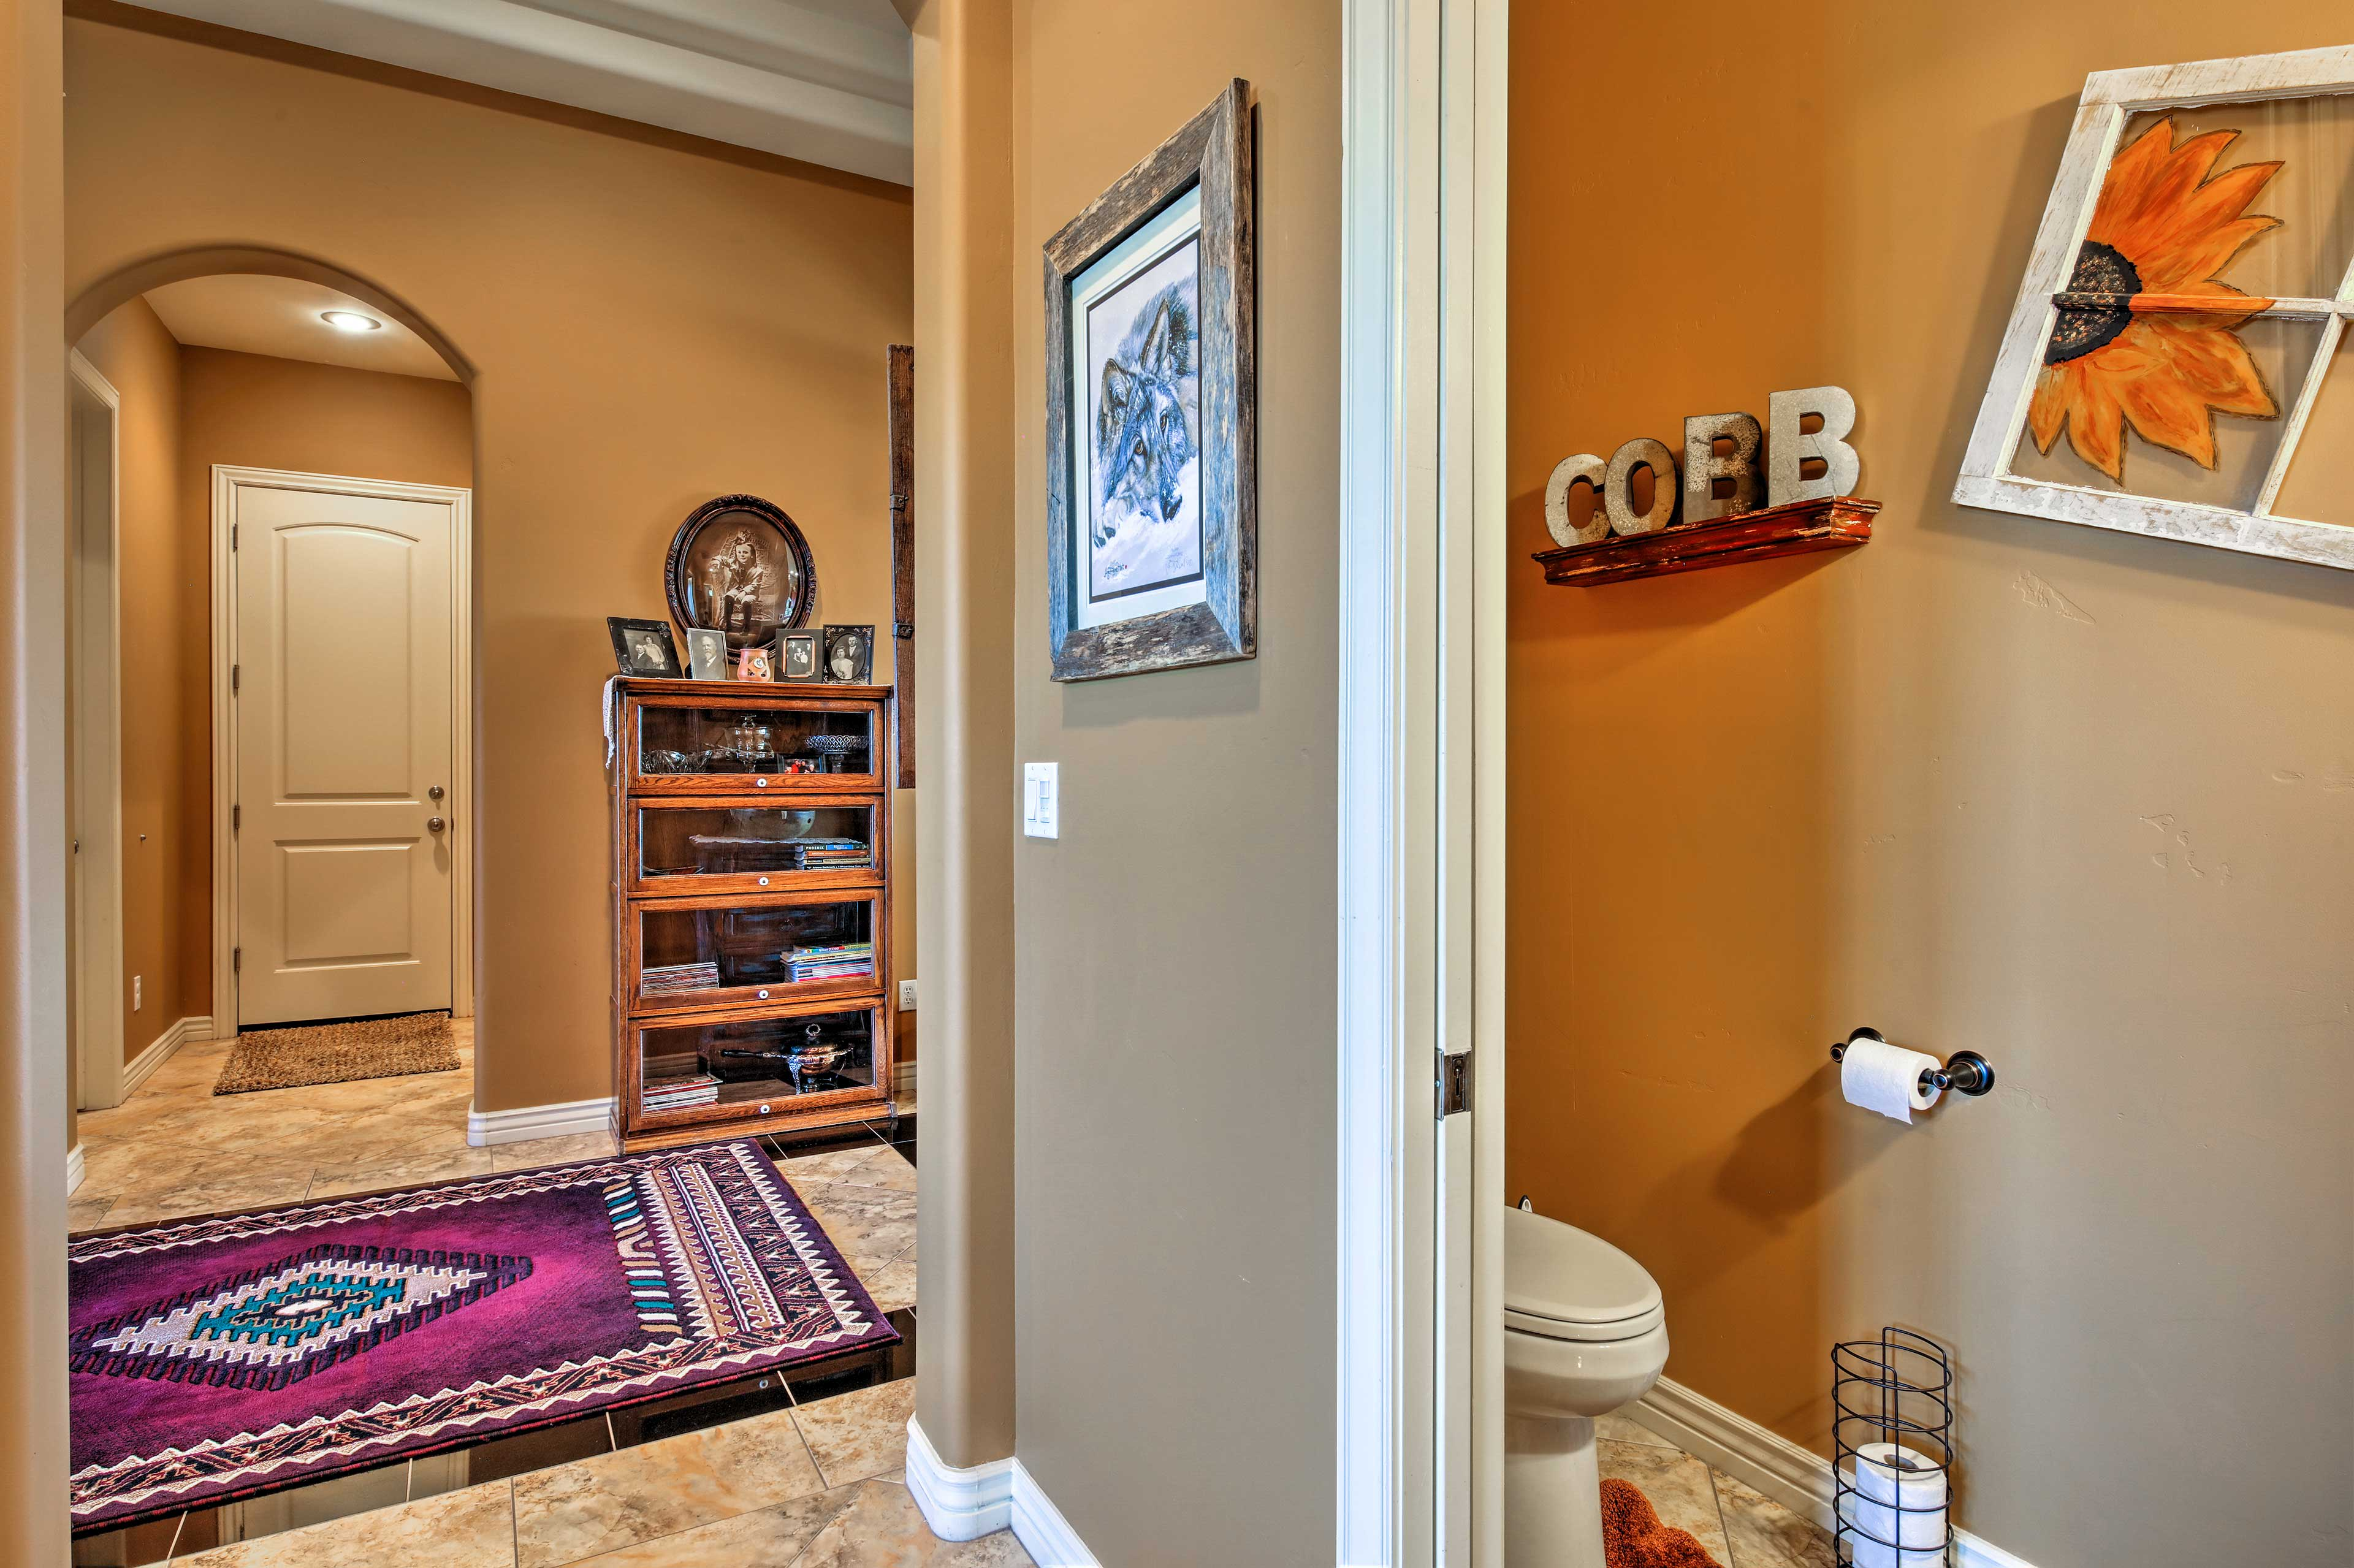 The half-bathroom is conveniently located just off the main living area.